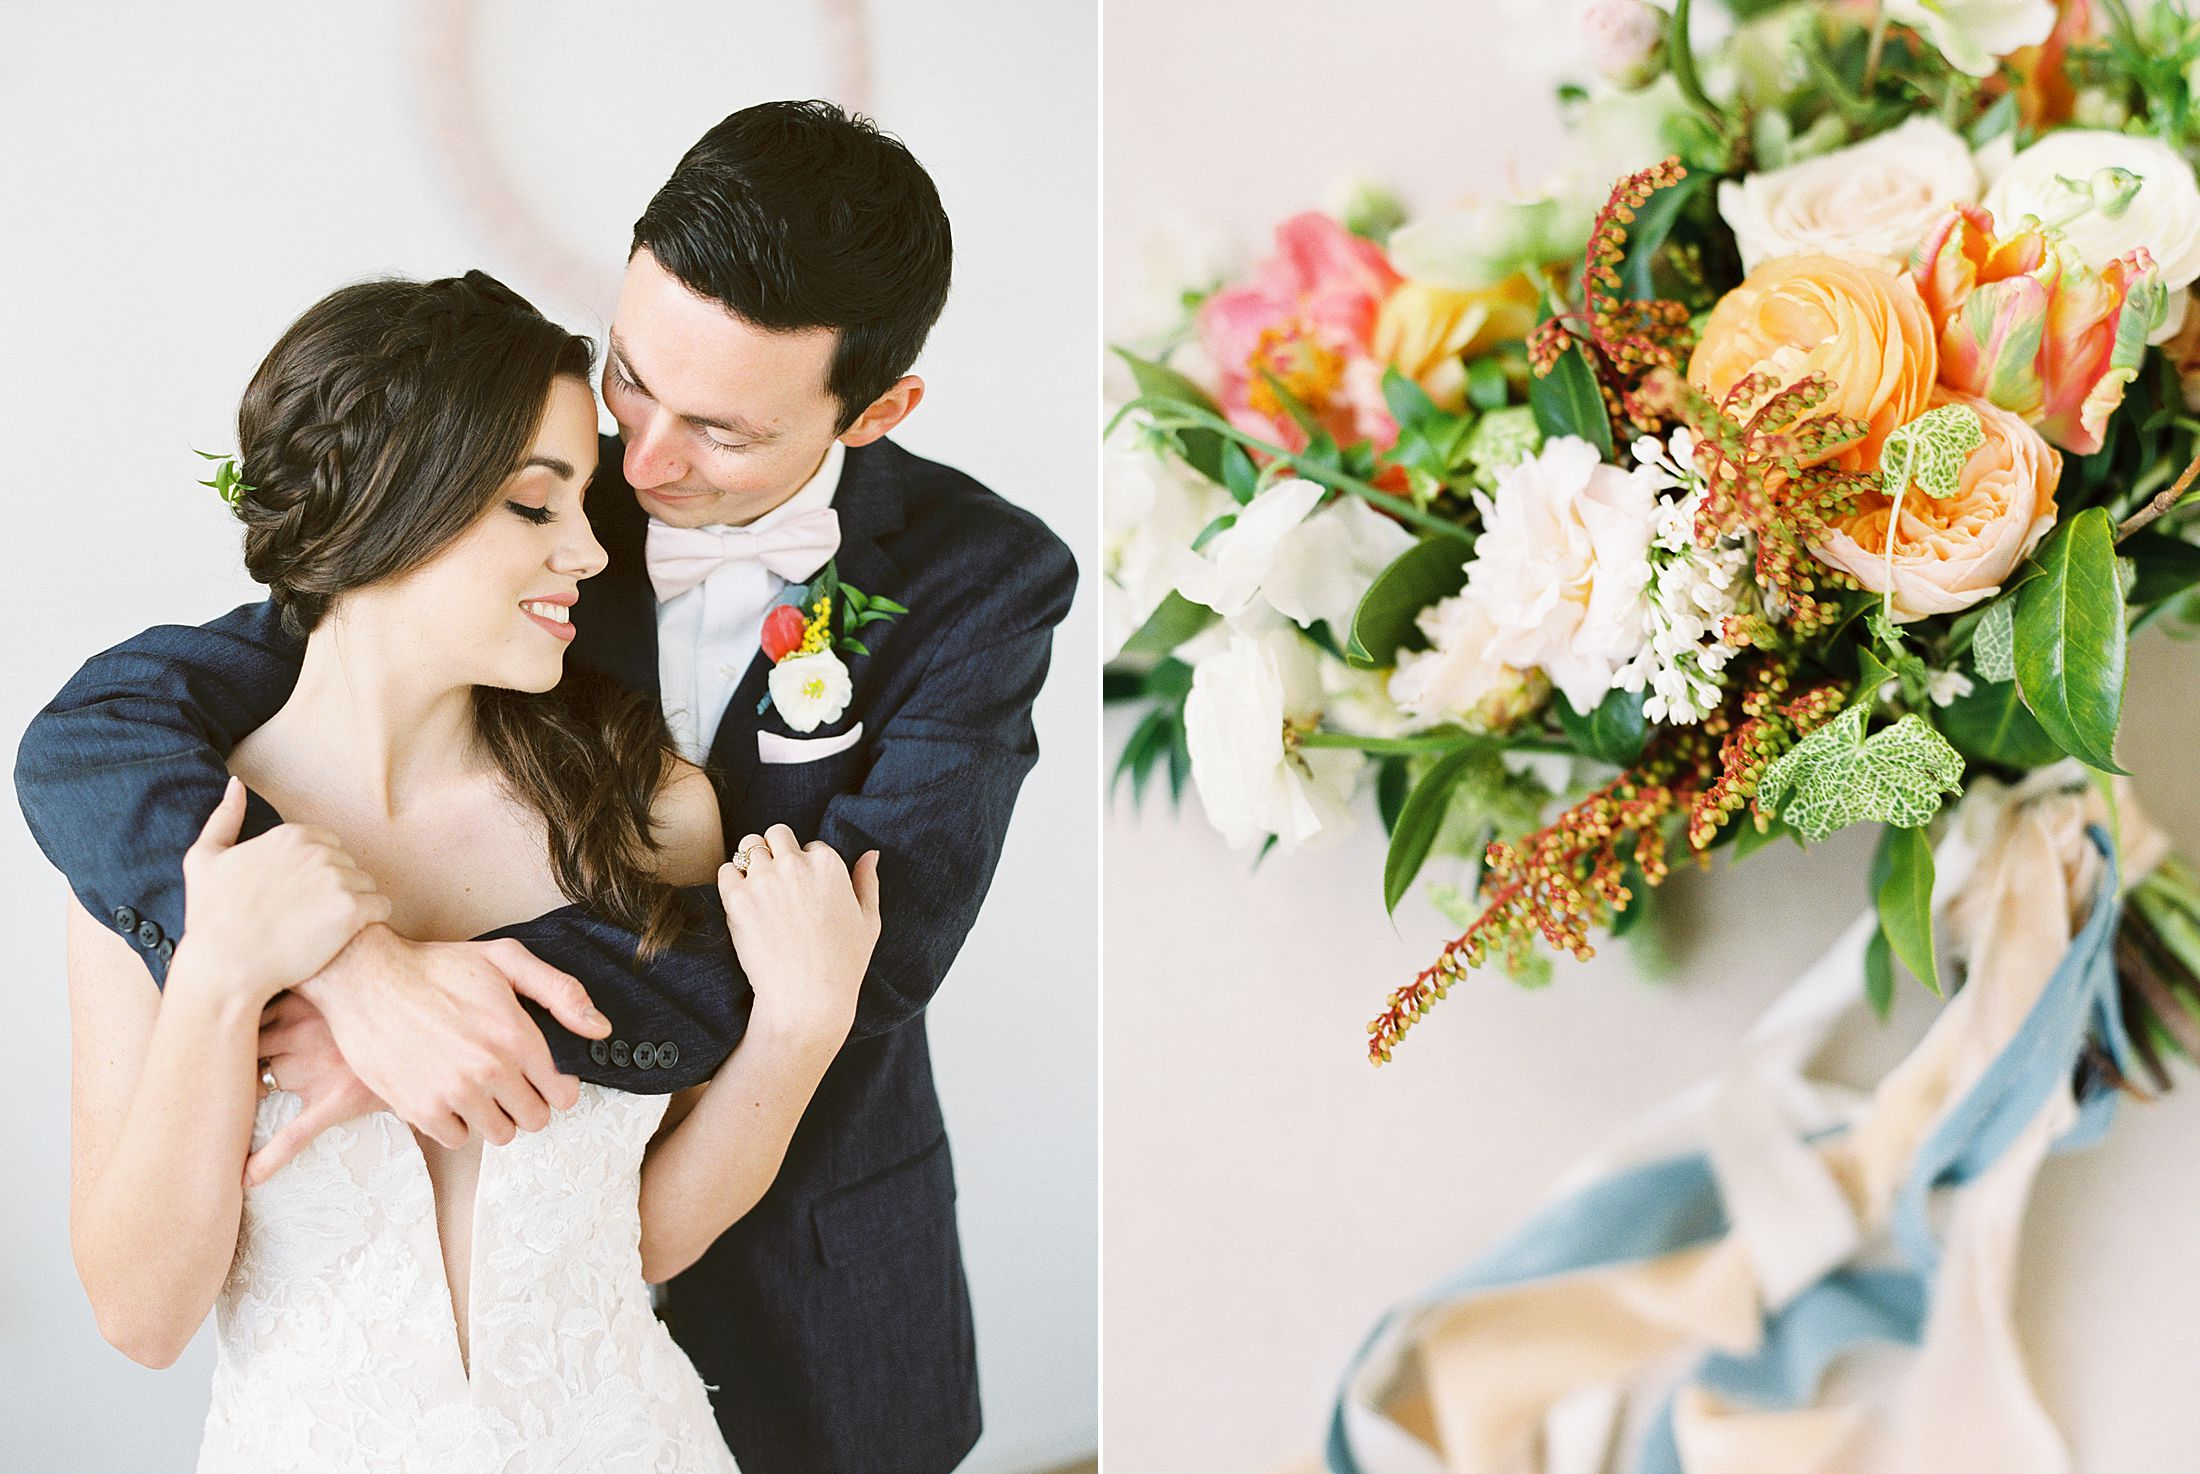 Bay Area Spring Wedding Inspiration - Ashley Baumgartner - Inspired By This - Party Crush Studio and Lens of Lenox Videography - Bay Area Wedding Photography_0037.jpg